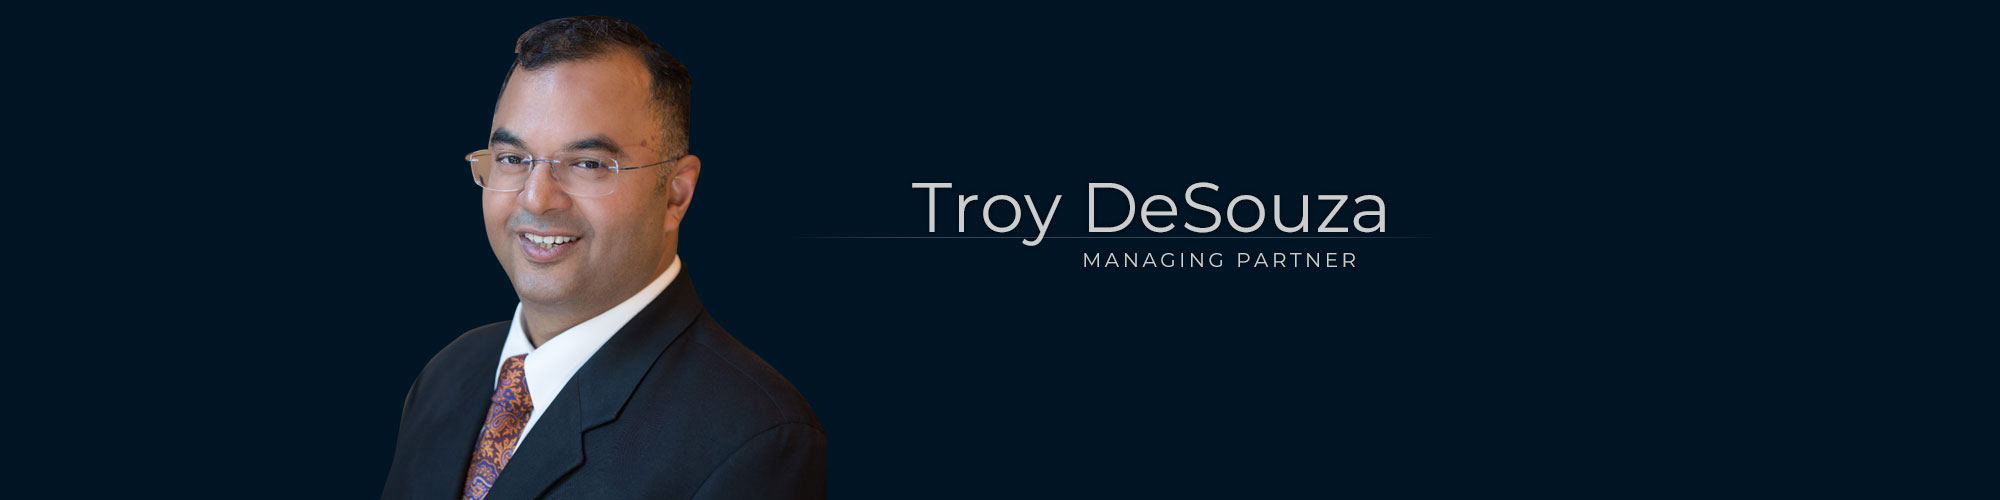 Troy DeSouza – Lawyer at Dominion GovLaw LLP